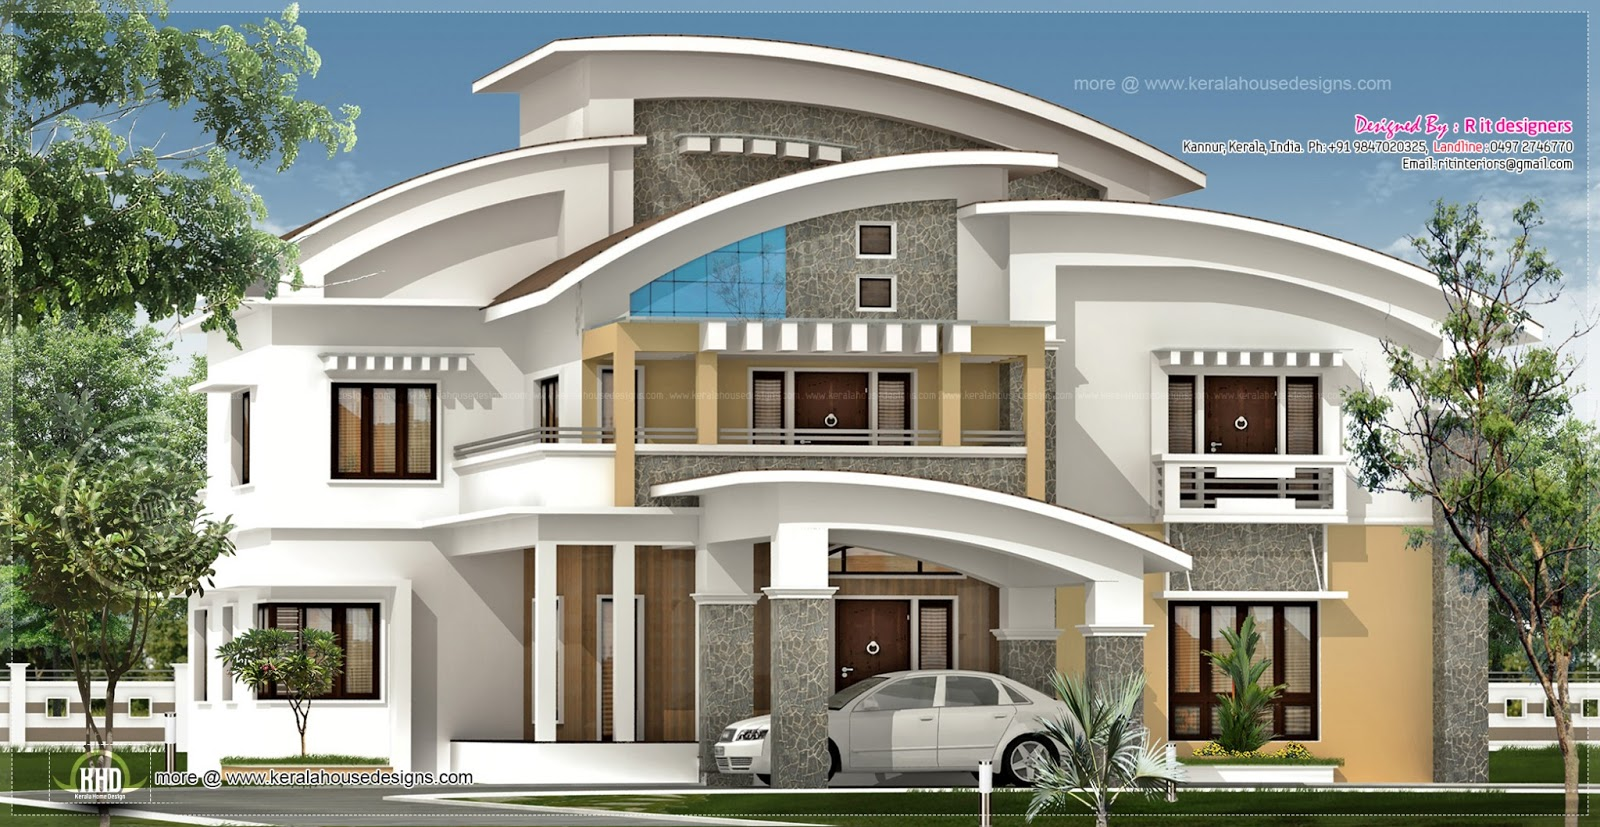 3750 square feet luxury villa exterior kerala home design and floor plans - Luxury houseplans ideas ...